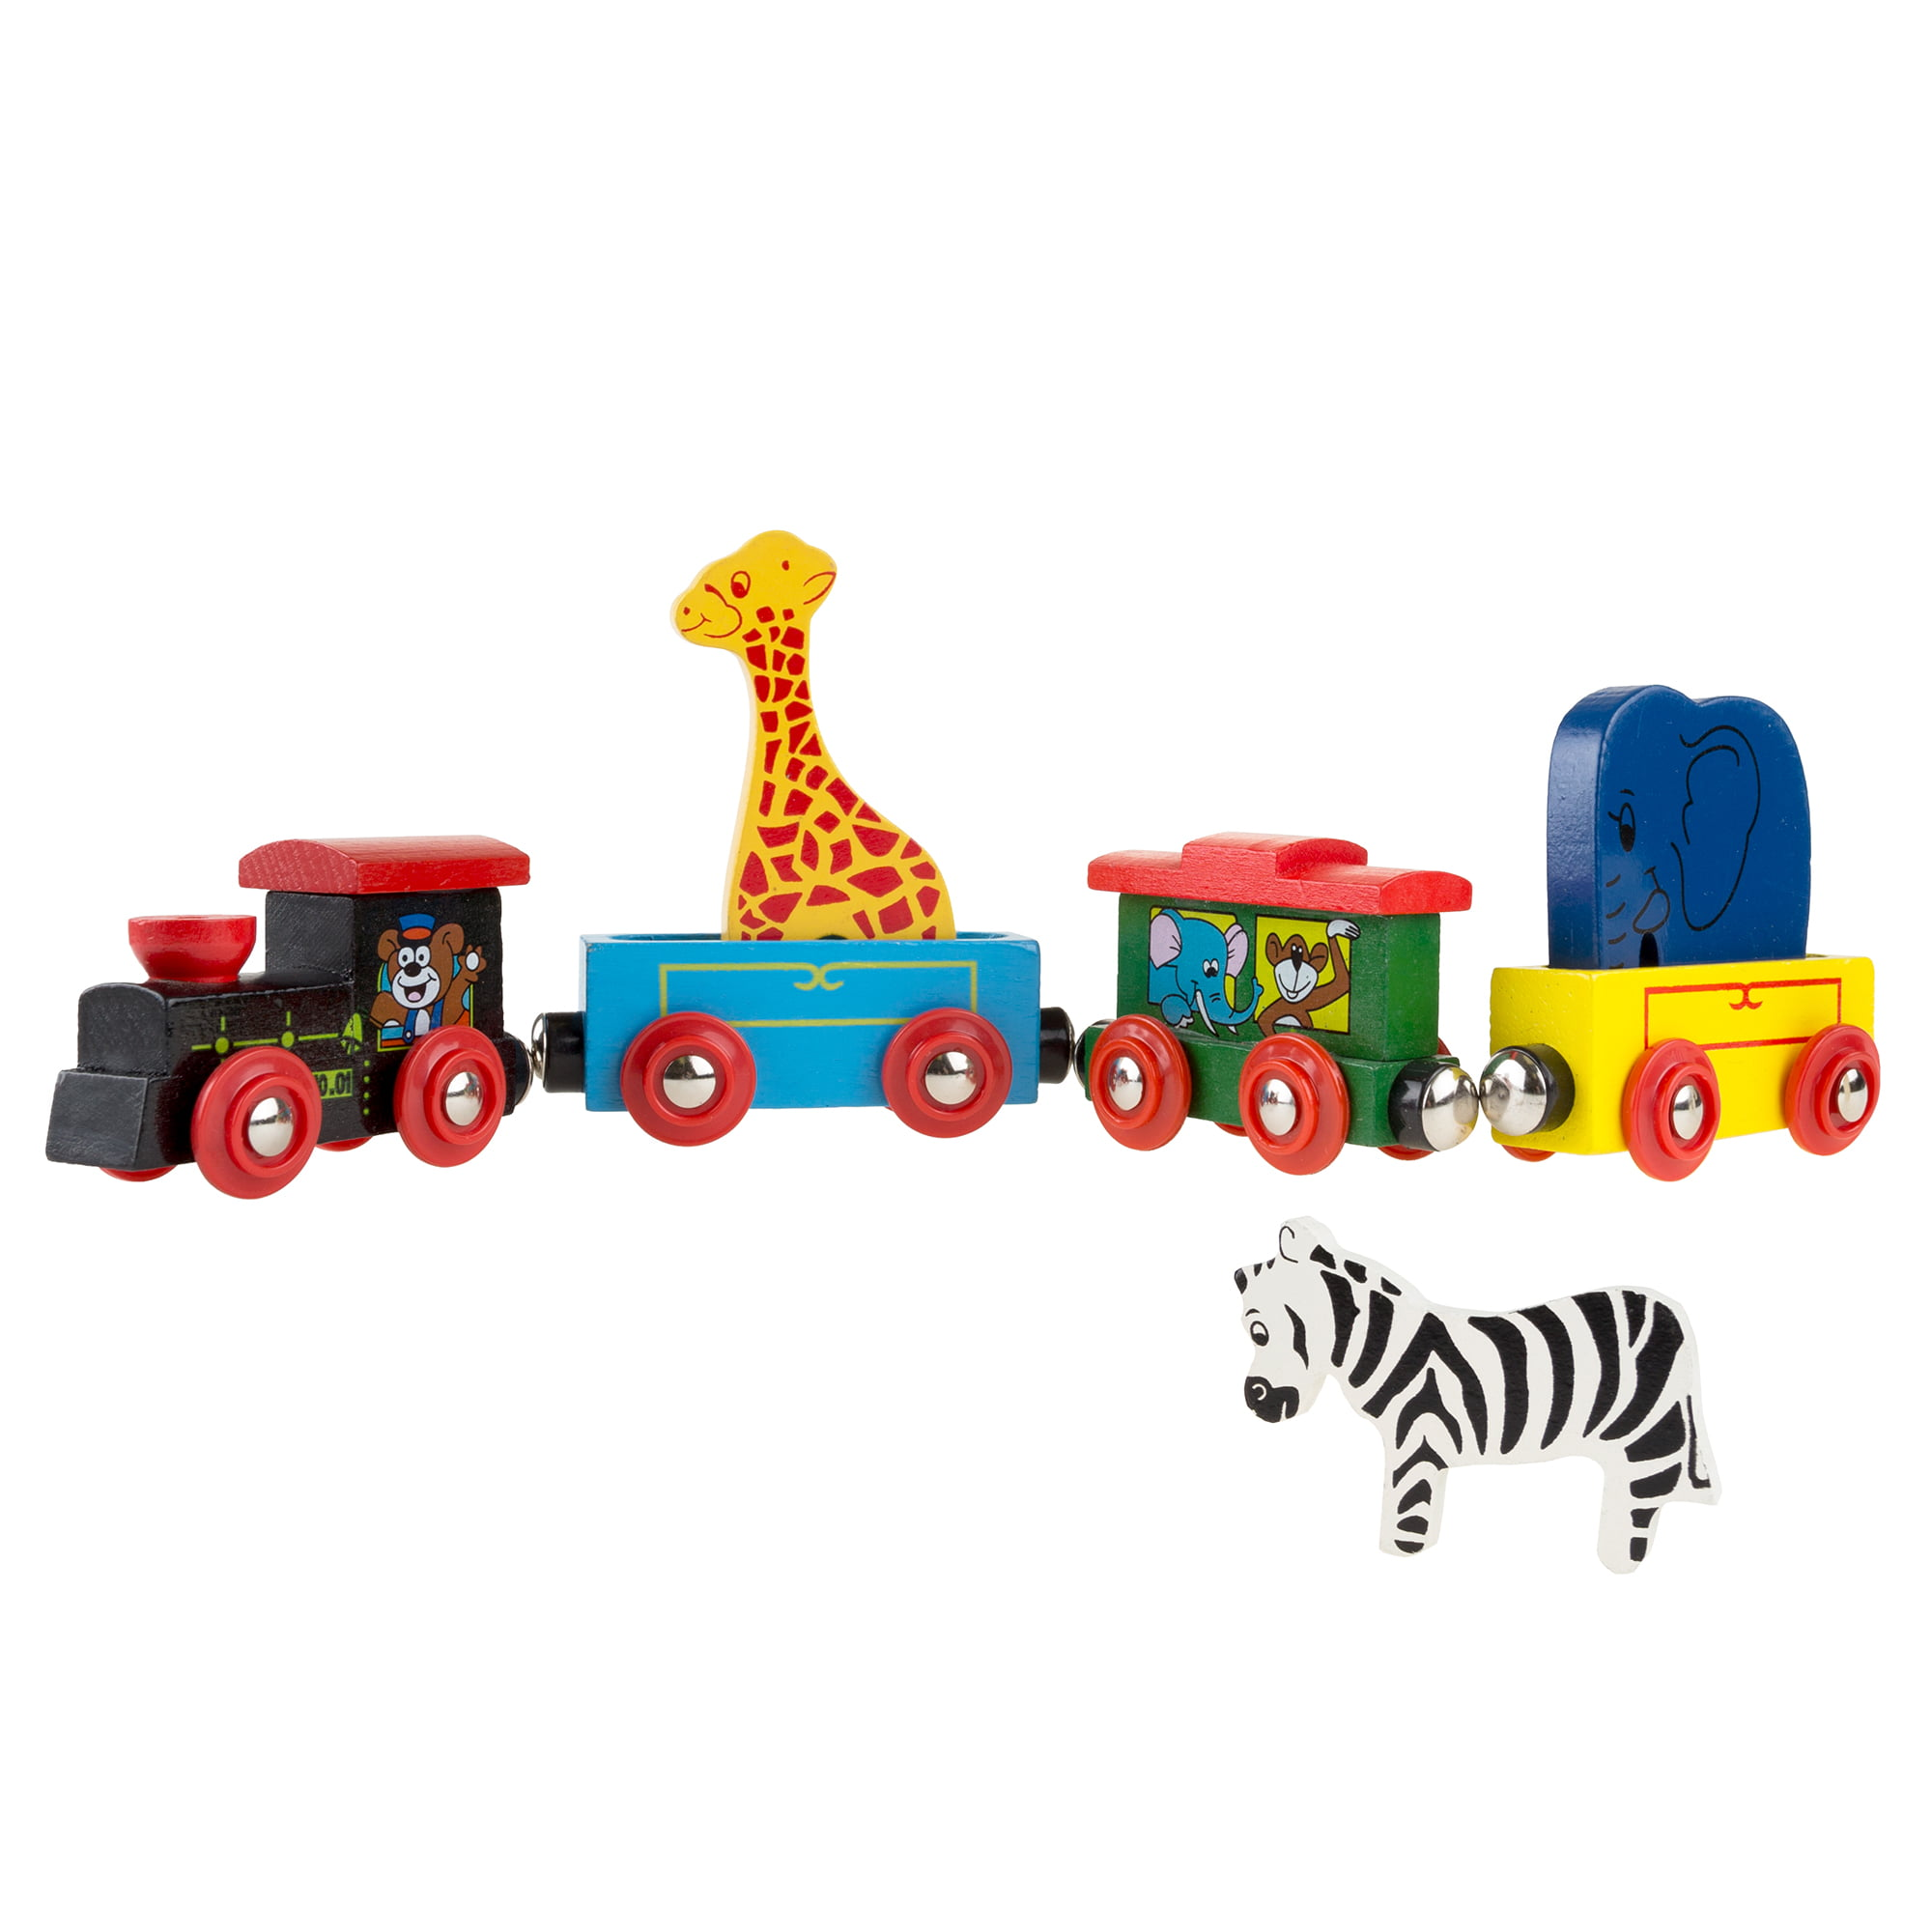 Magnetic Train Toy Wooden Animal Learning Train Set with 4 Trains 3 Wooden Animals for... by Trademark Global LLC